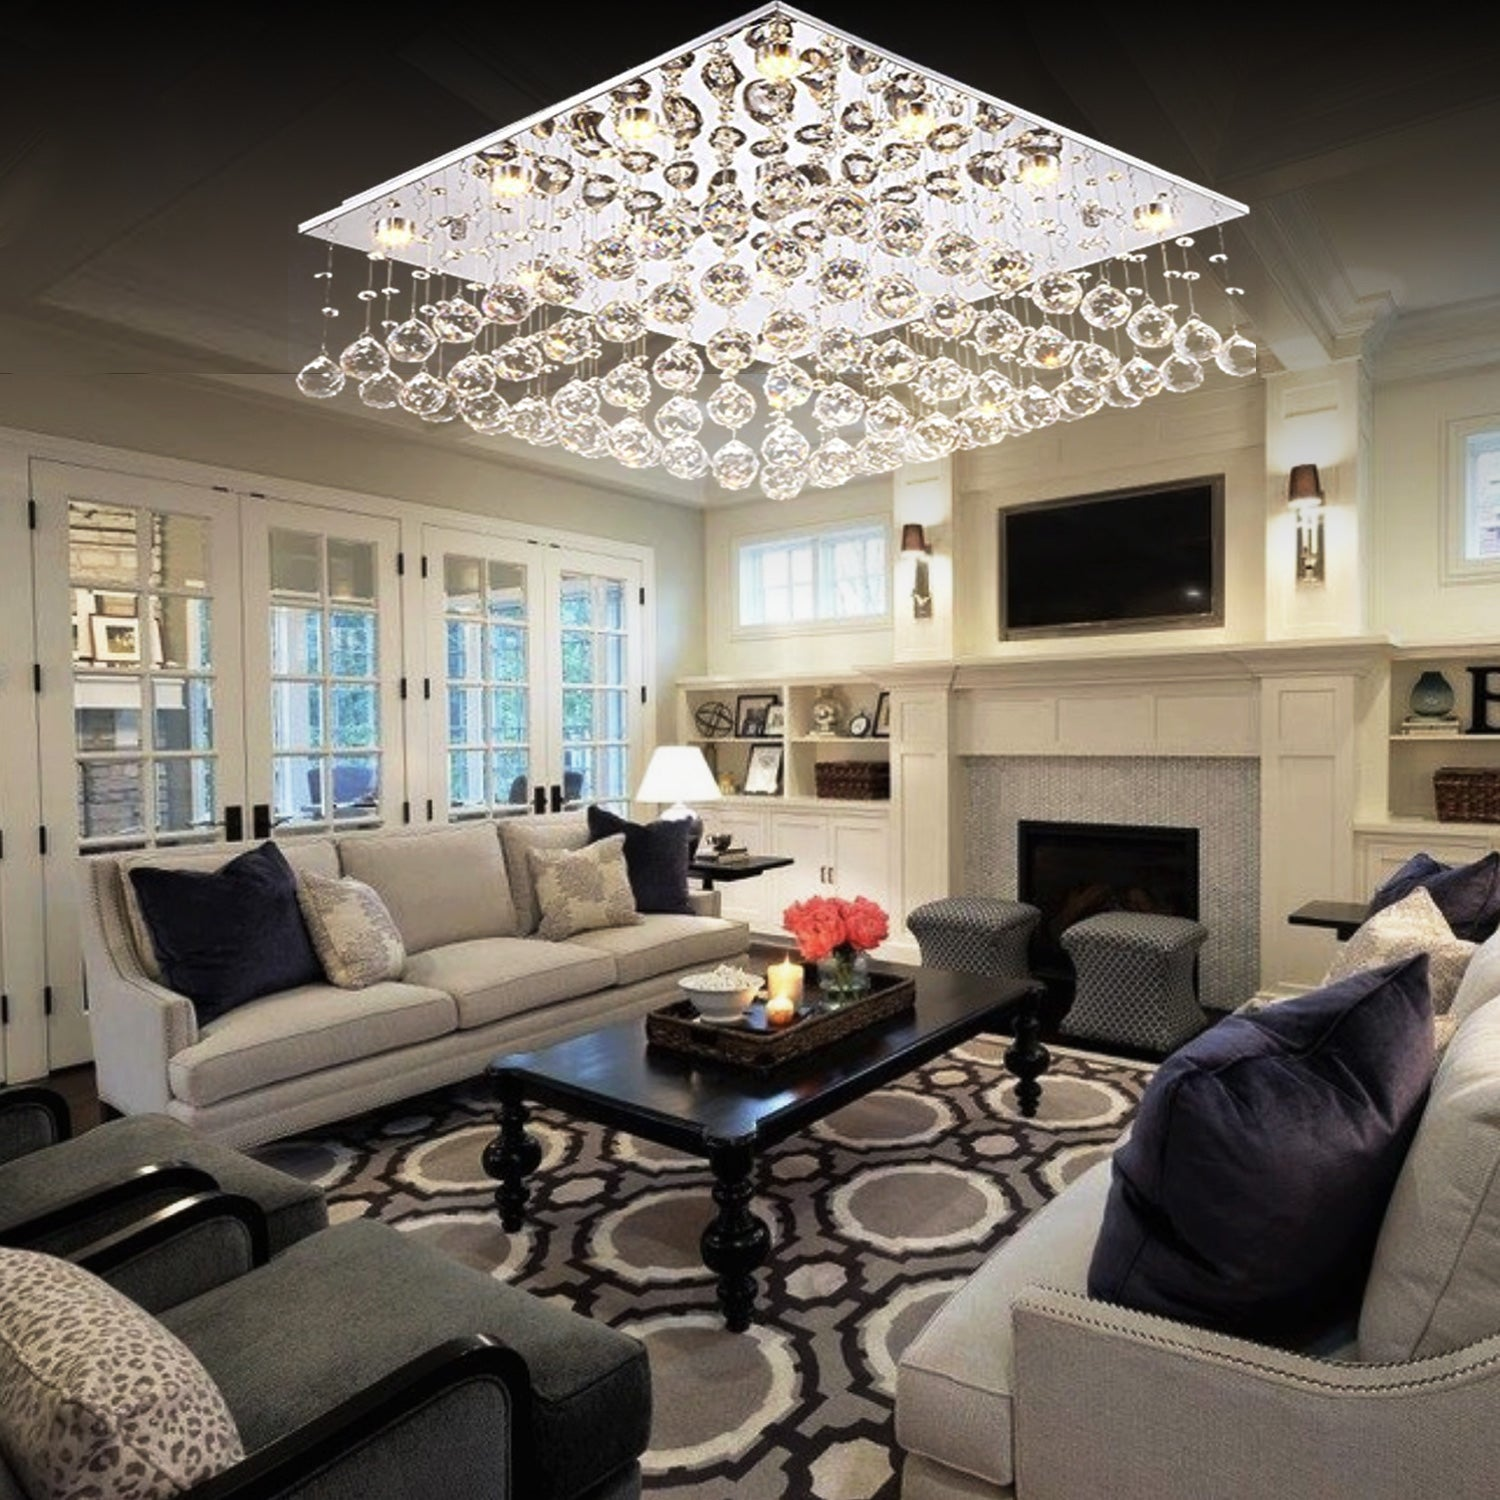 Square Low Ceiling Raindrop Crystal Chandelier - Ceiling ...